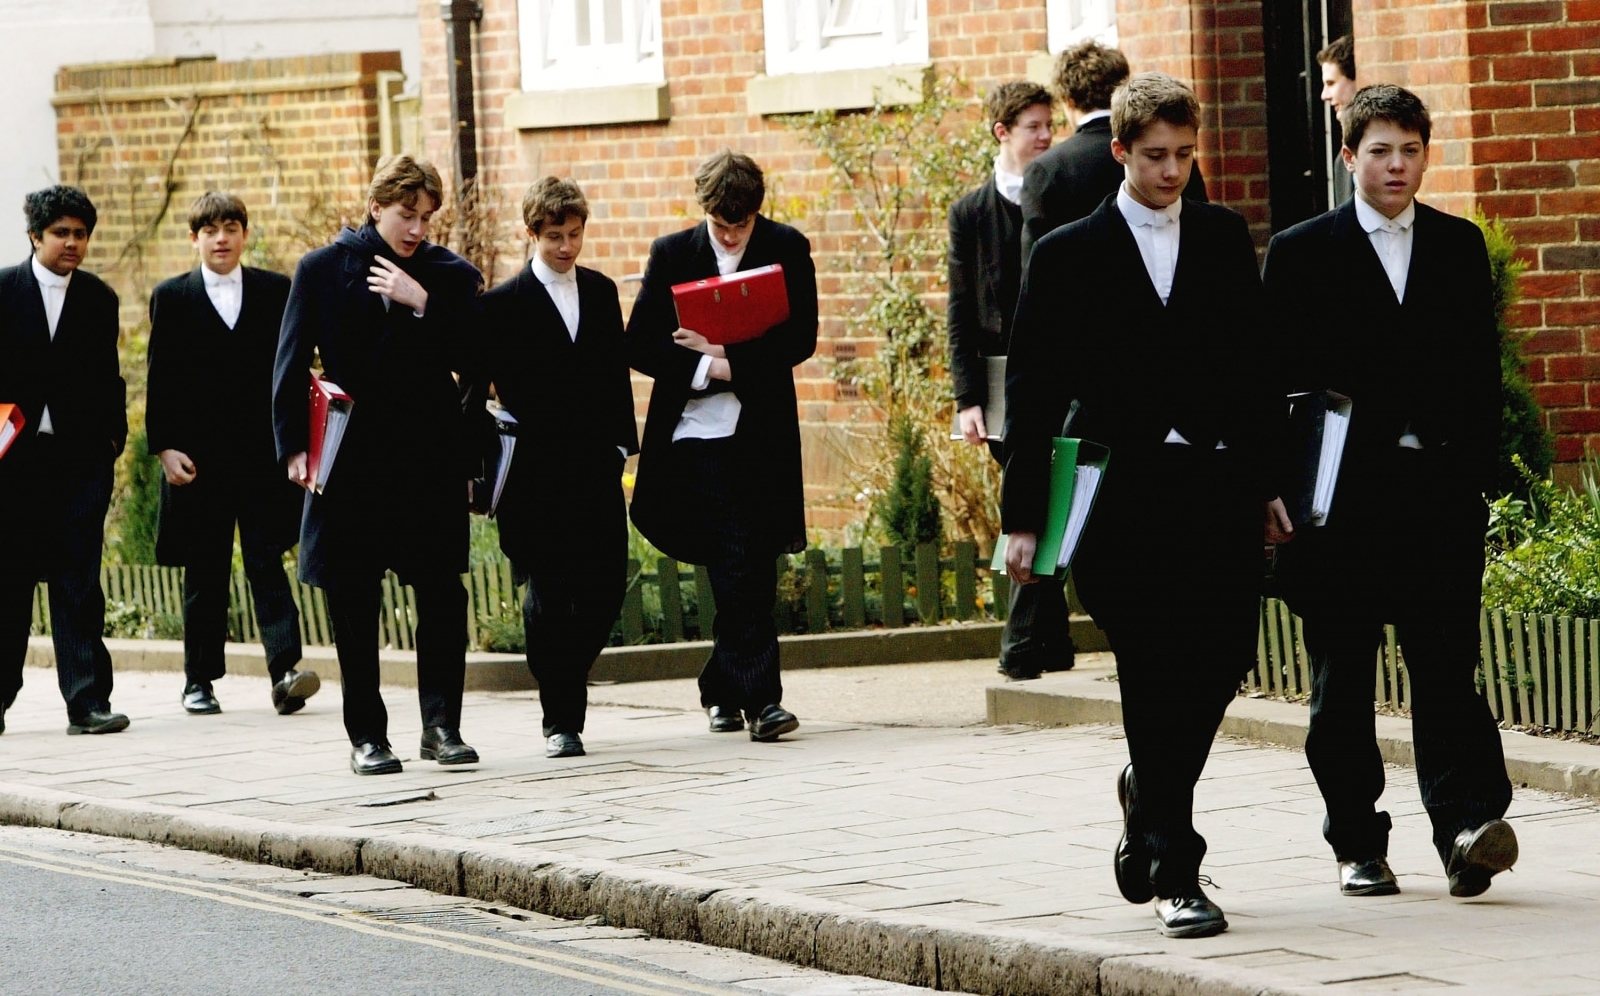 Eton college pupils